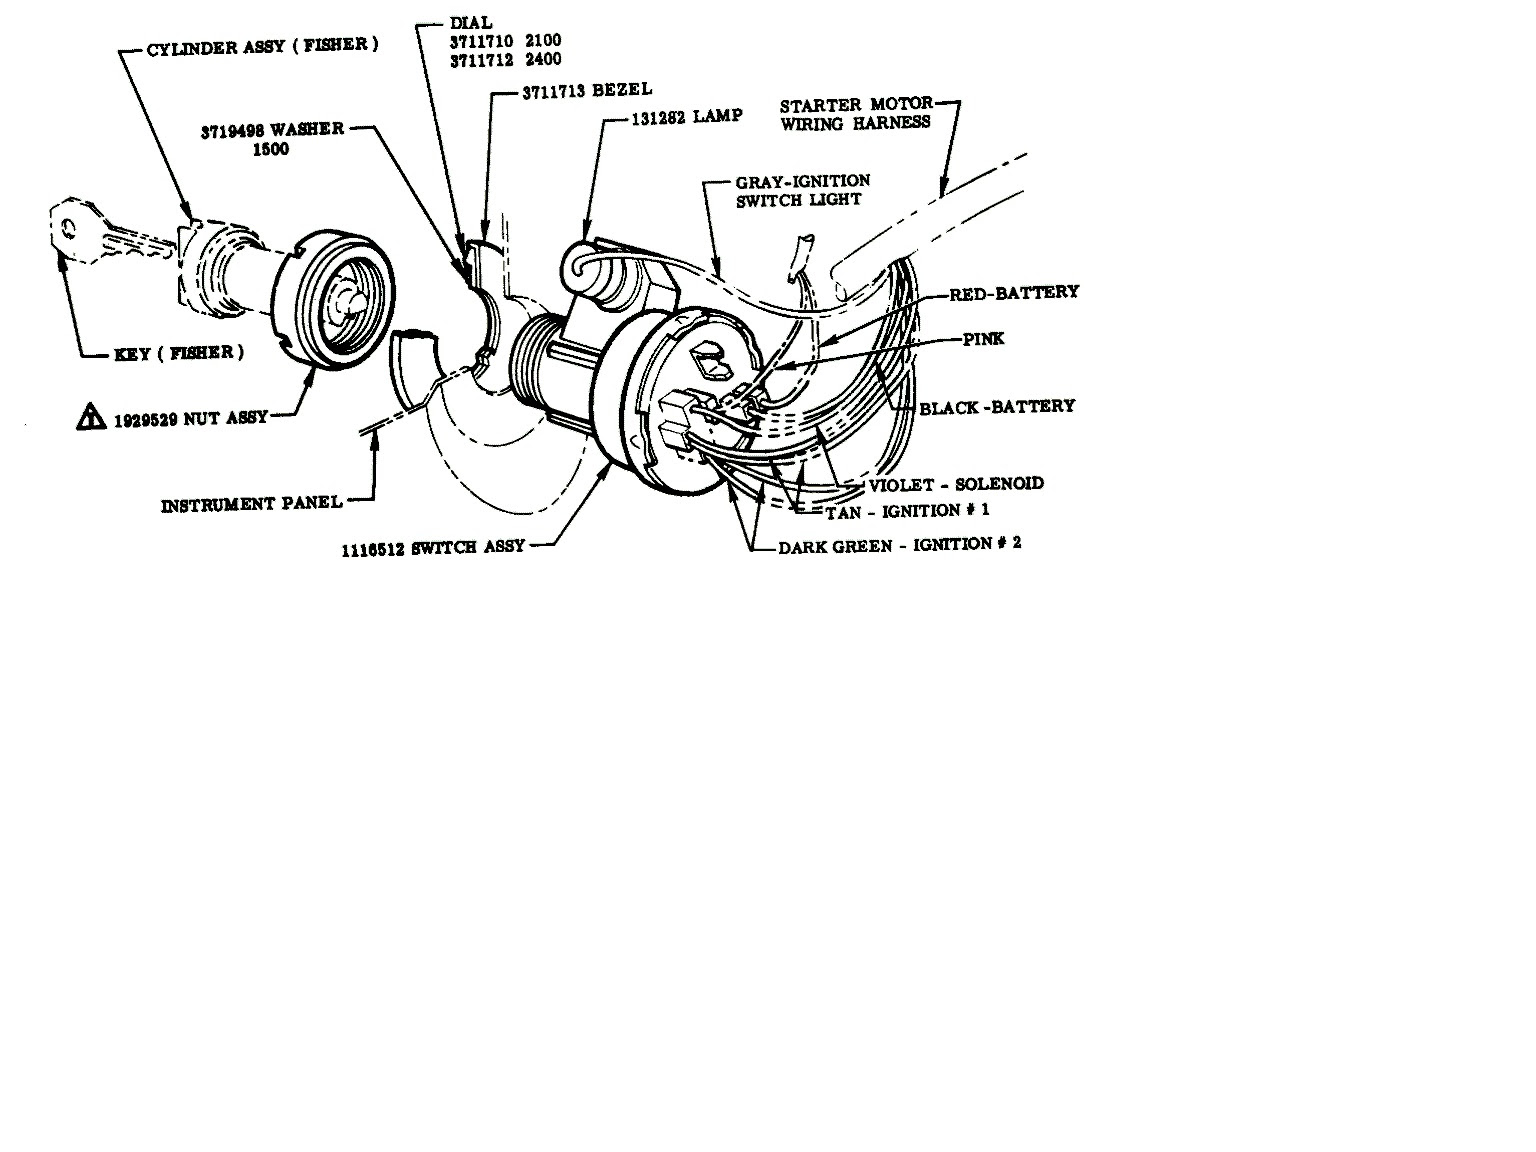 1954 Chevy Ignition Diagram Wiring Schematic Wiring Diagram View A View A Zaafran It